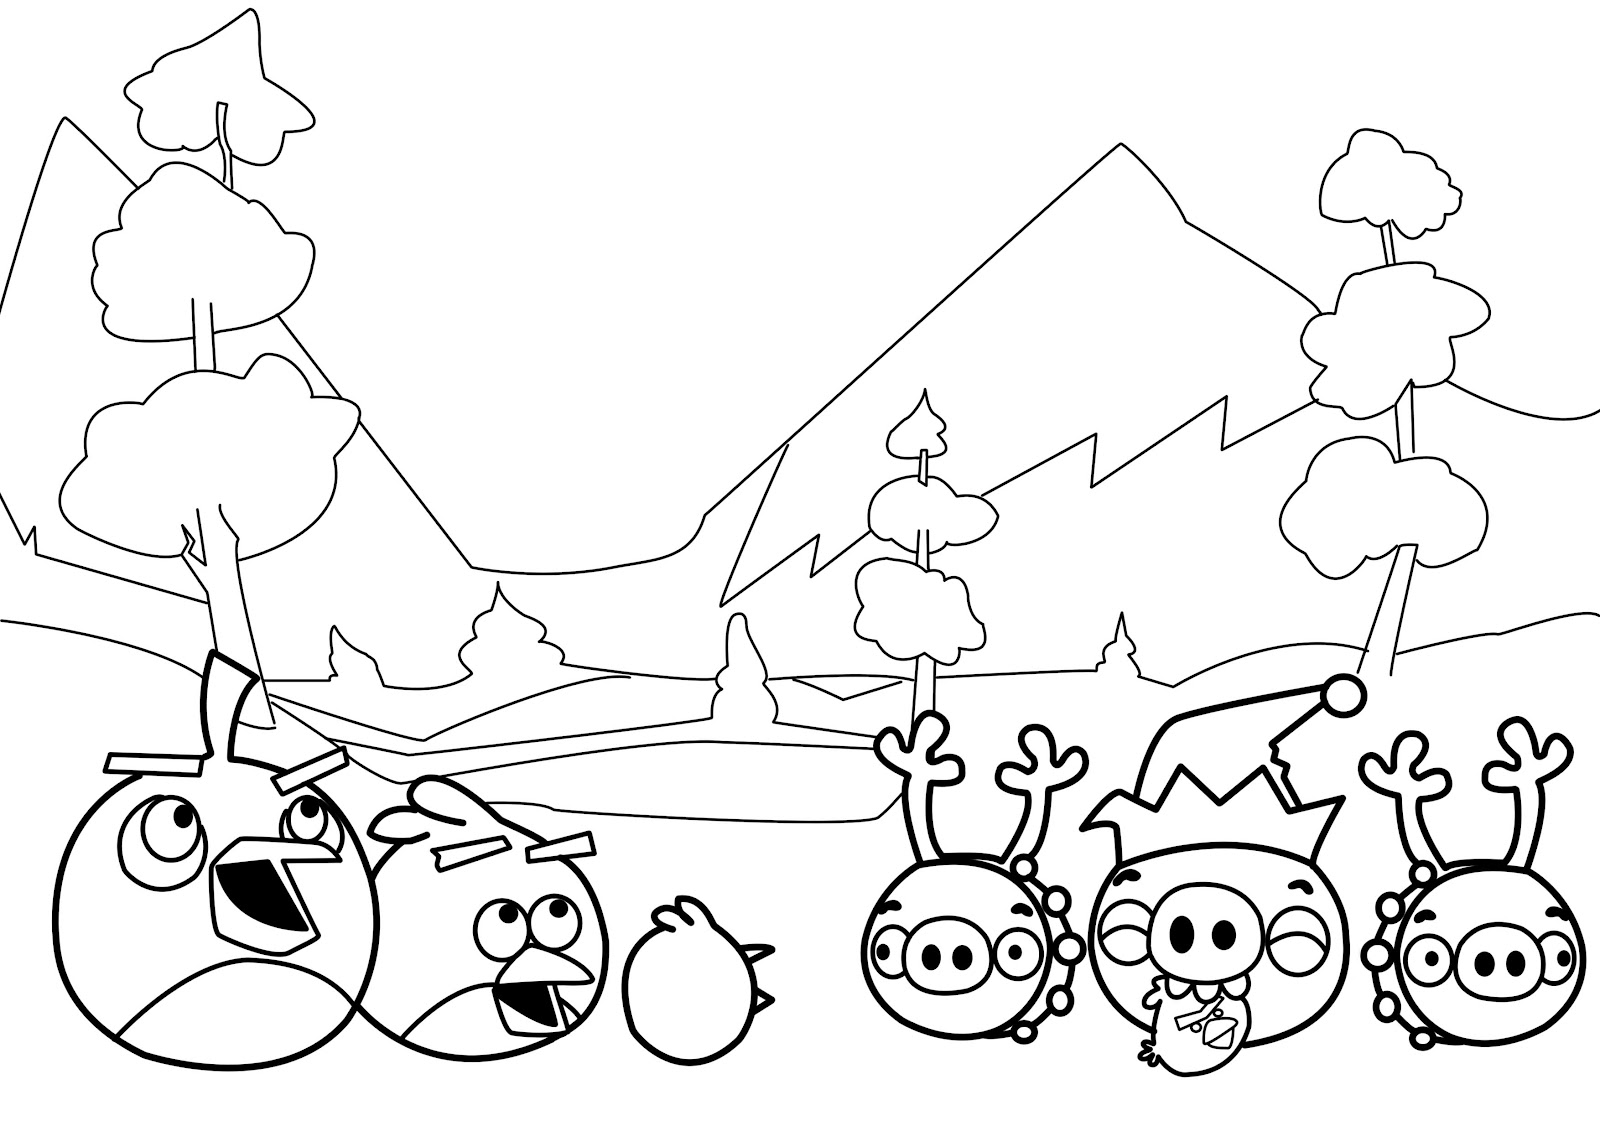 angry birds pictures to color angry bird pigs coloring pages printable free coloring color angry to birds pictures